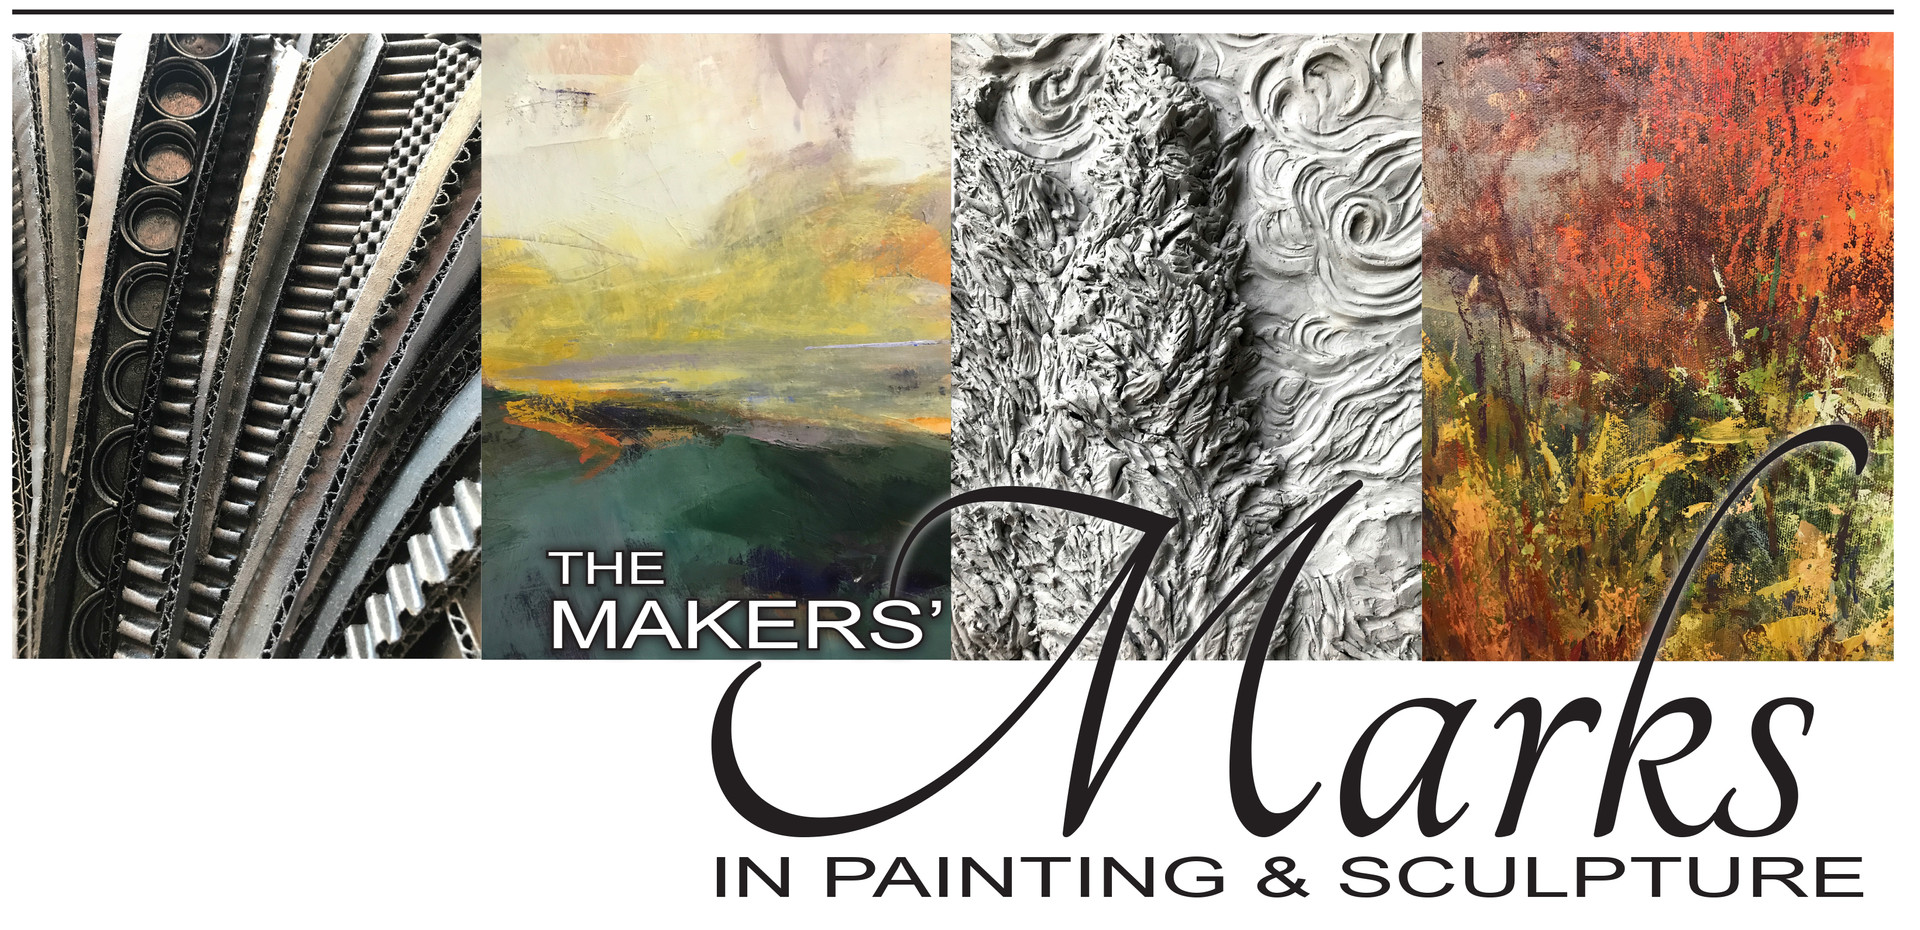 The Makers' Marks in Painting & Sculpture   The Barn in Mariemont August 15 - September 4, 2018 featuring the work of Jan and Mark Wiesner, Gina Stevenson and Eileen McConkey